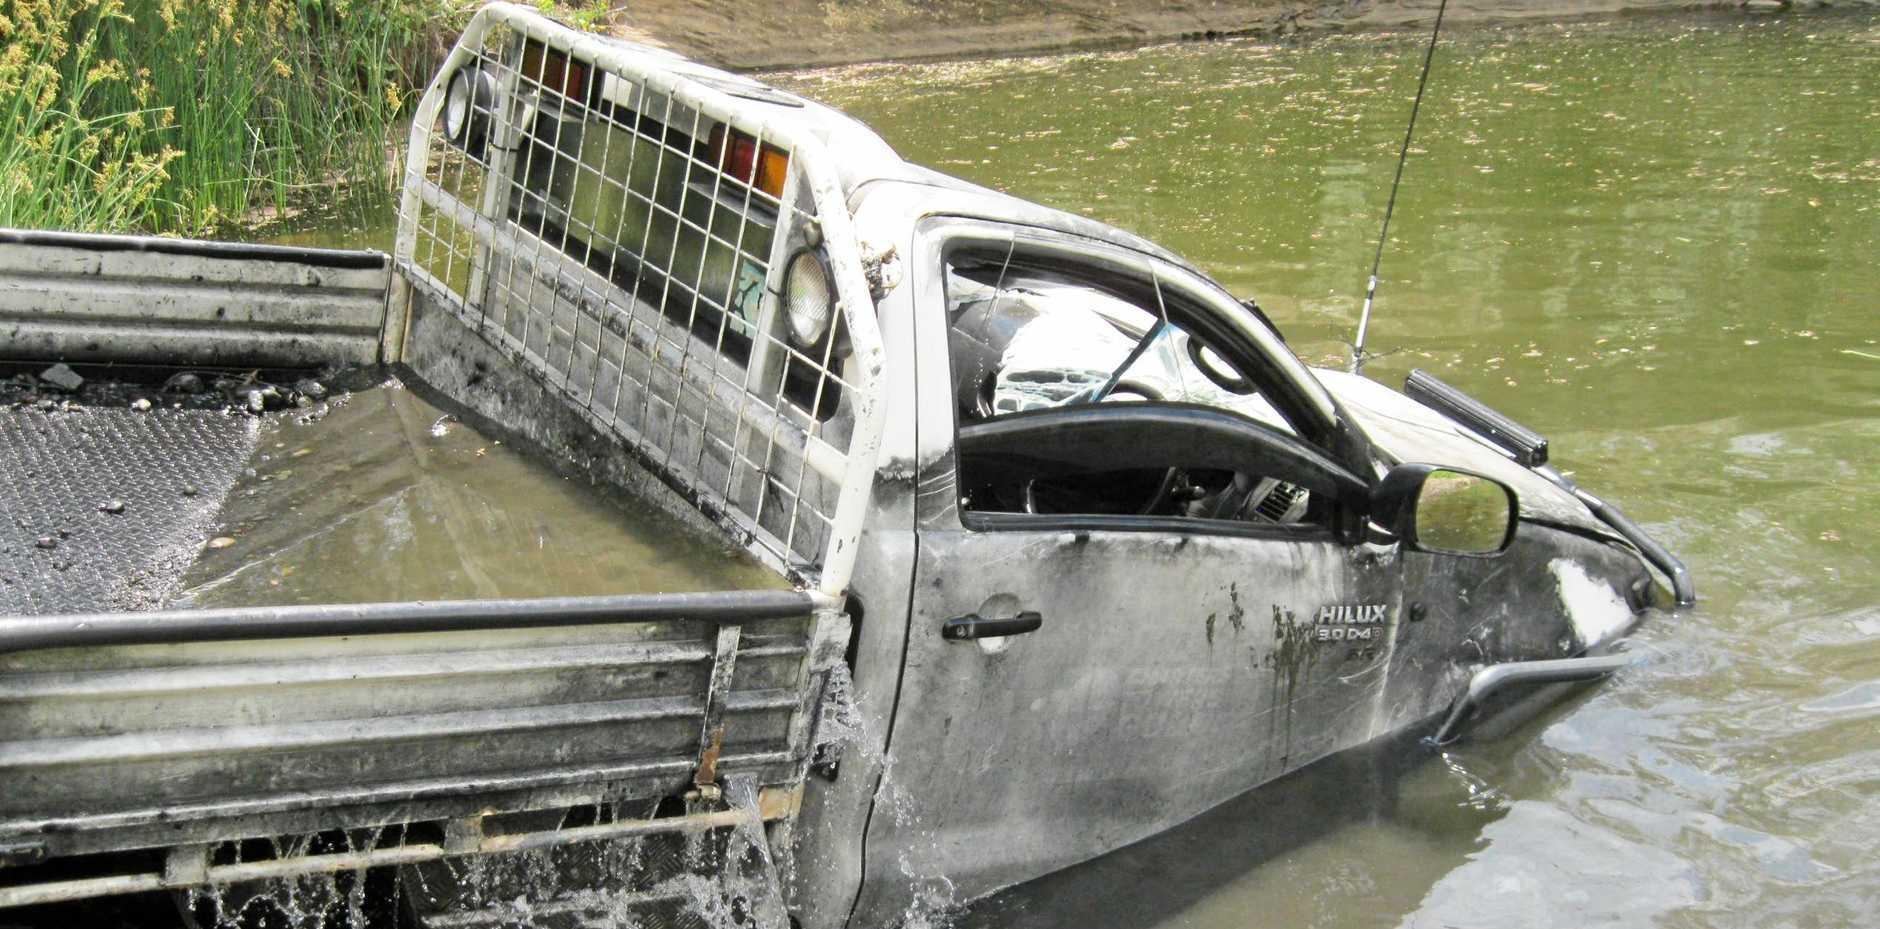 SUBMERGED: Police divers located the ute that was dumped at The Rockies, near Emu Vale.